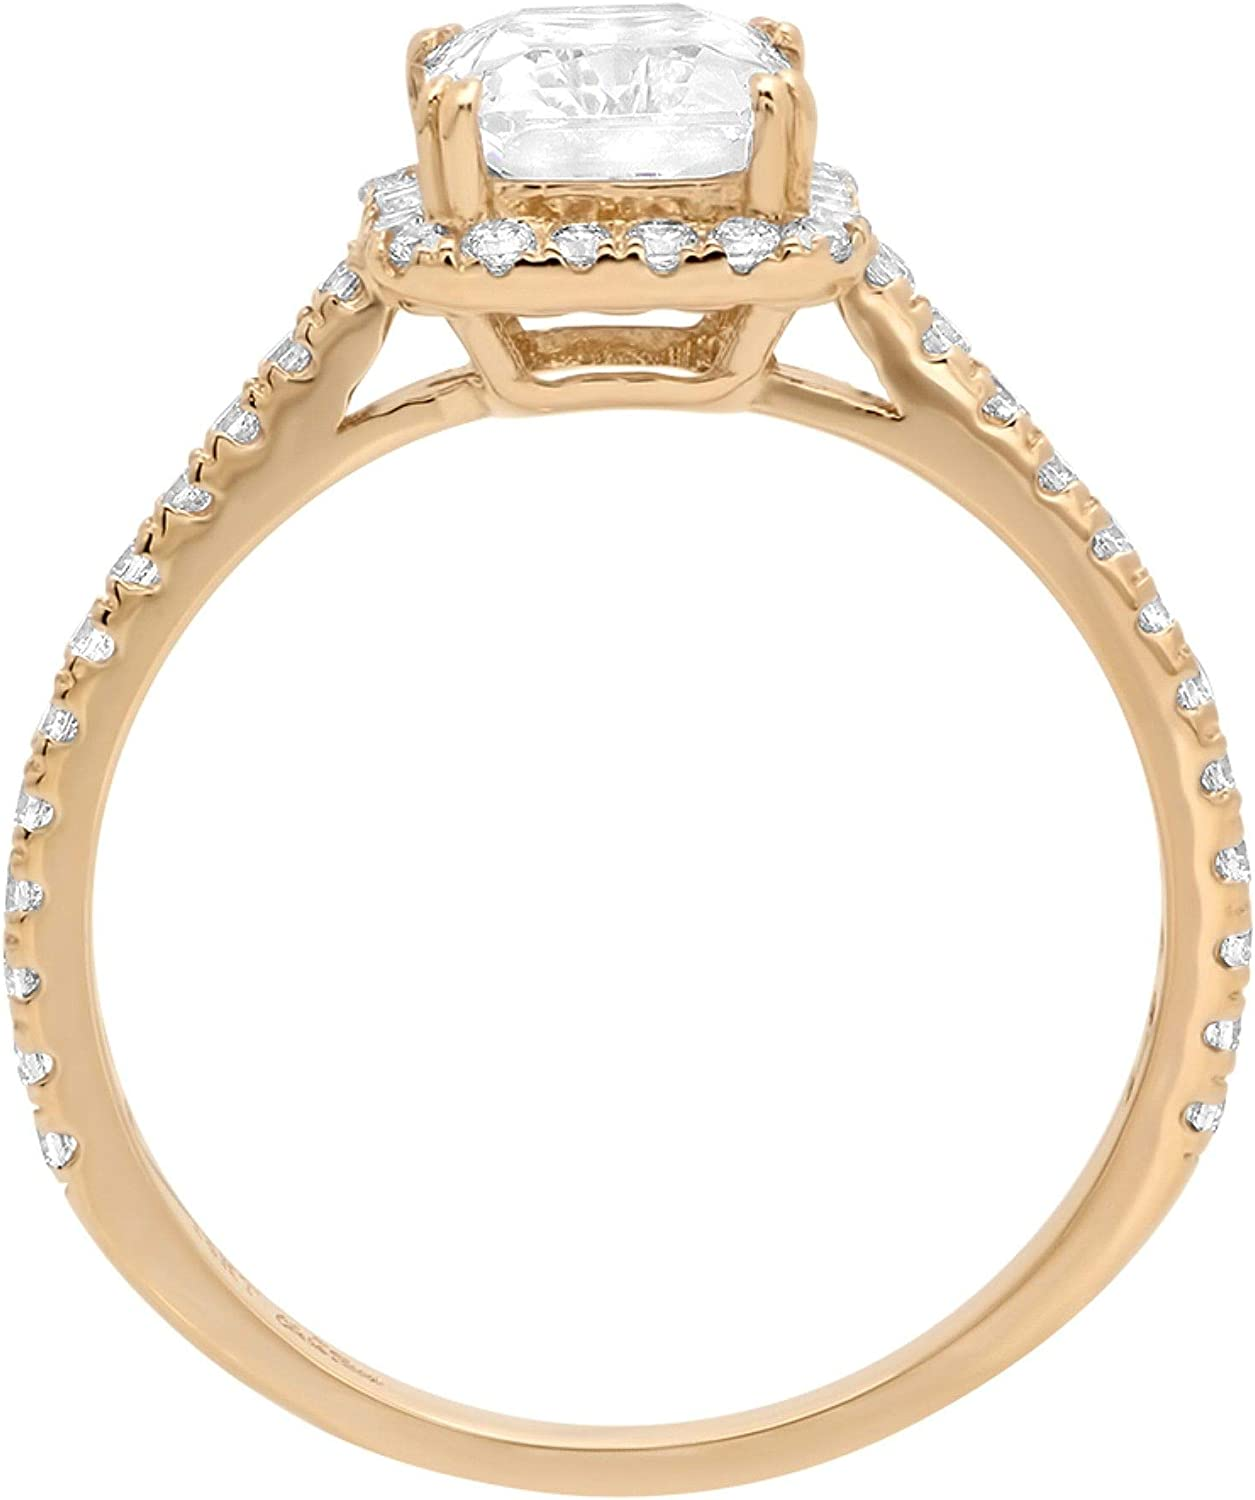 2.08ct Brilliant Emerald Halo Simulated Diamond Statement Solitaire Ring 14k Yellow Gold